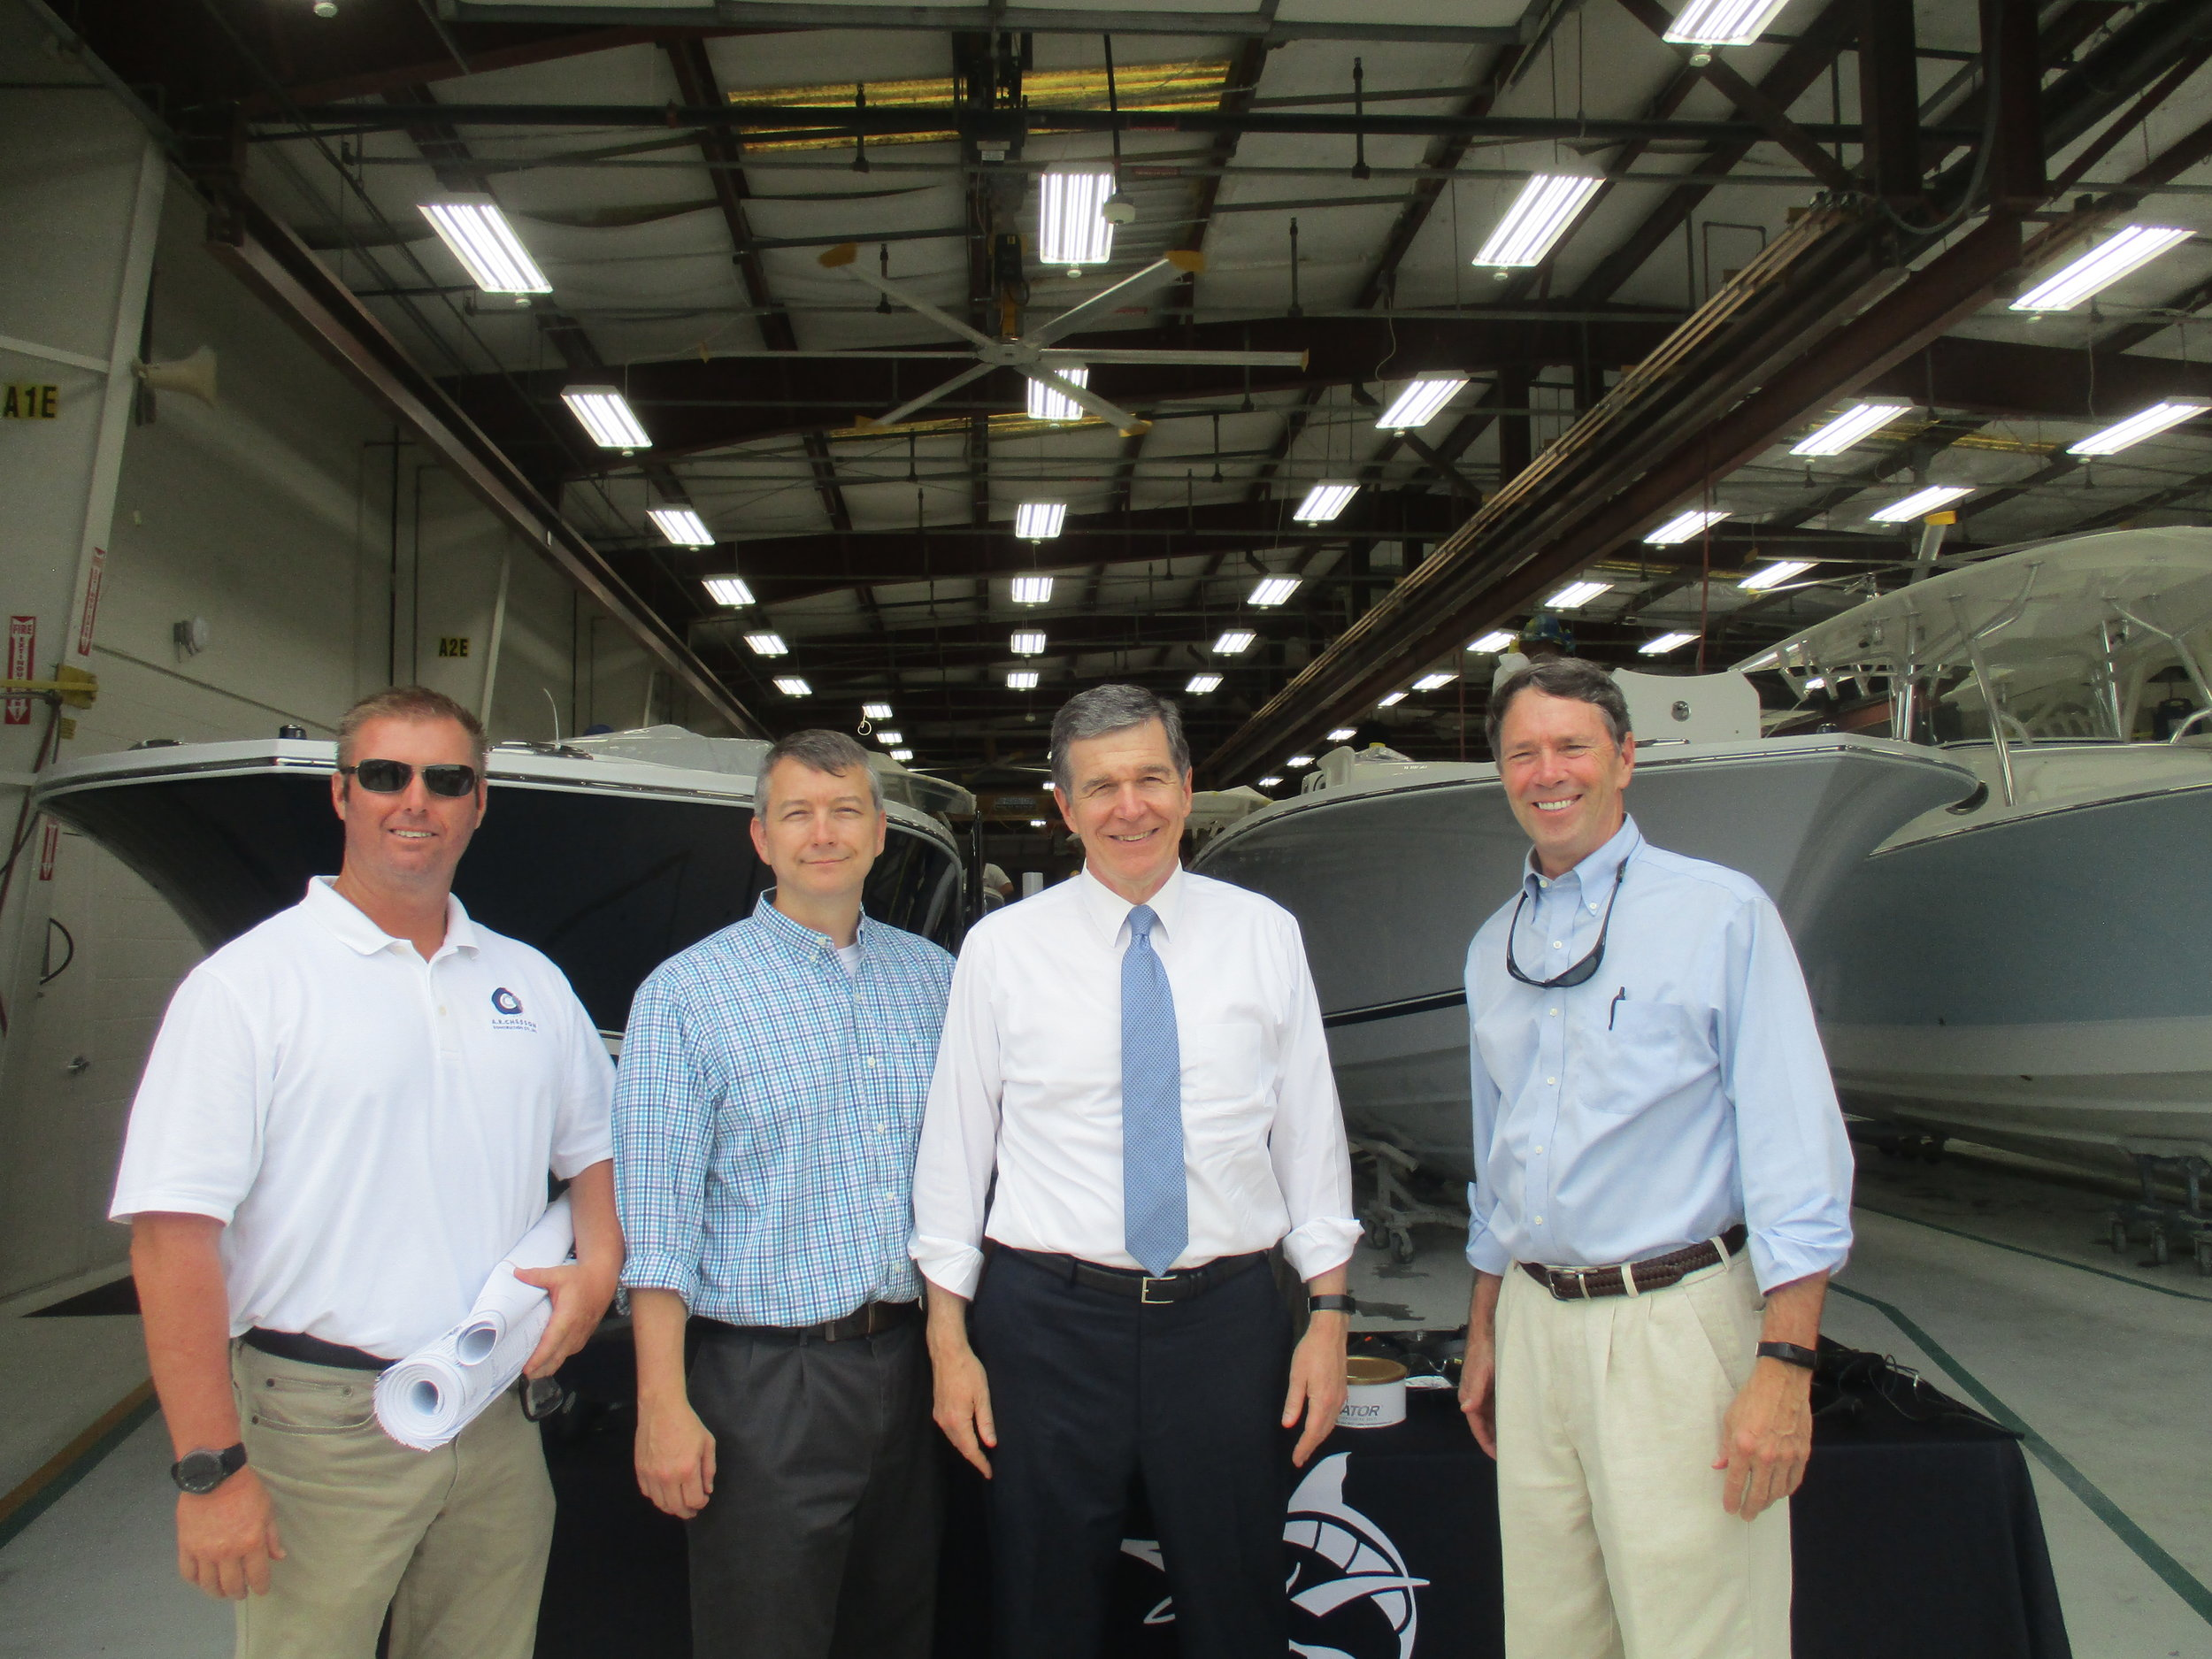 Pictured left to right: Greg Evans, Site Superintendent;Mitchell Ayers, Designer; Governor Roy Cooper; Al Chesson, President of A. R. Chesson Construction.